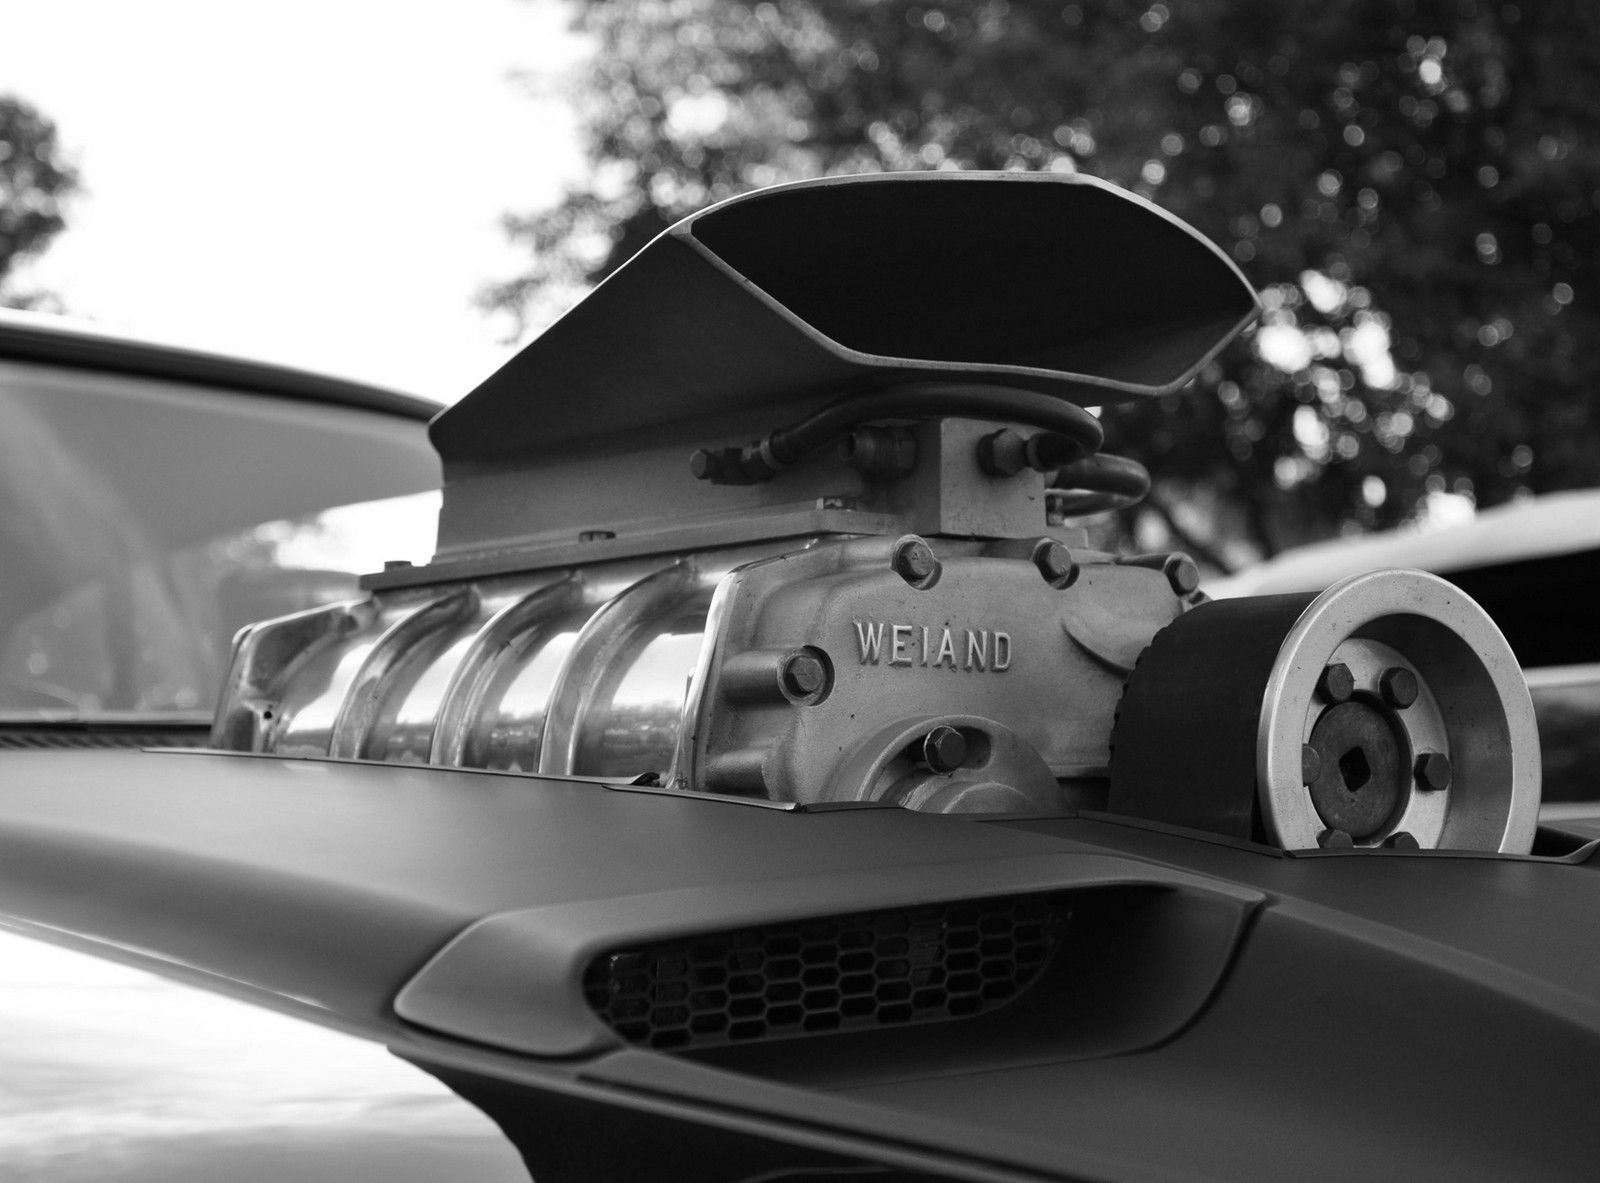 Beautiful picture The supercharger is made by Weiand